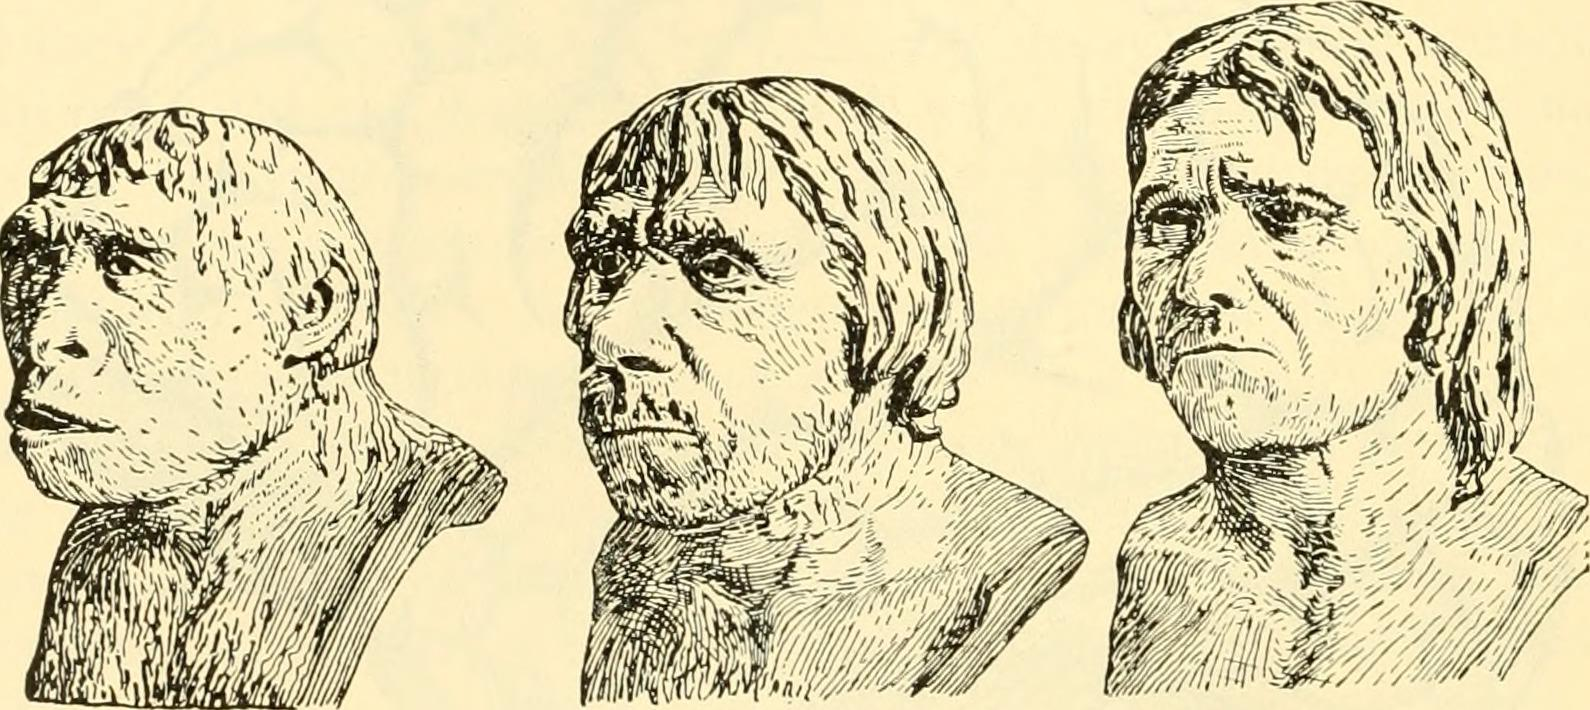 Three stages of human evolution, looking more like a modern man from left to right. Pencil drawings on a tan background